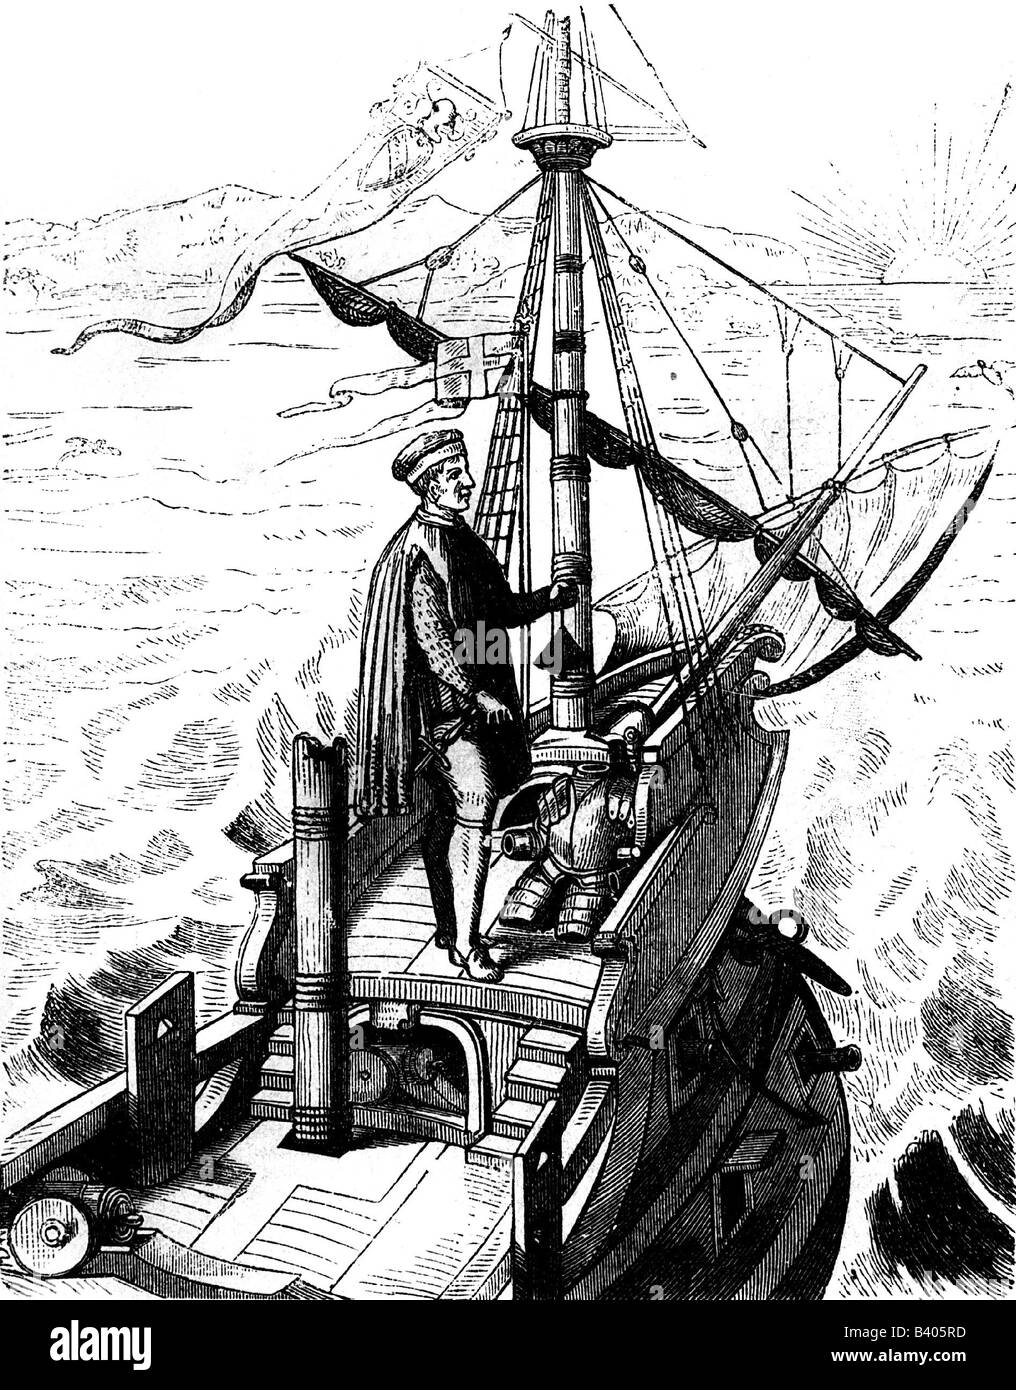 Whalers in action wood engraving published in 1855 stock illustration - Columbus Christopher 1451 20 5 1506 Italian Explorer Scene With